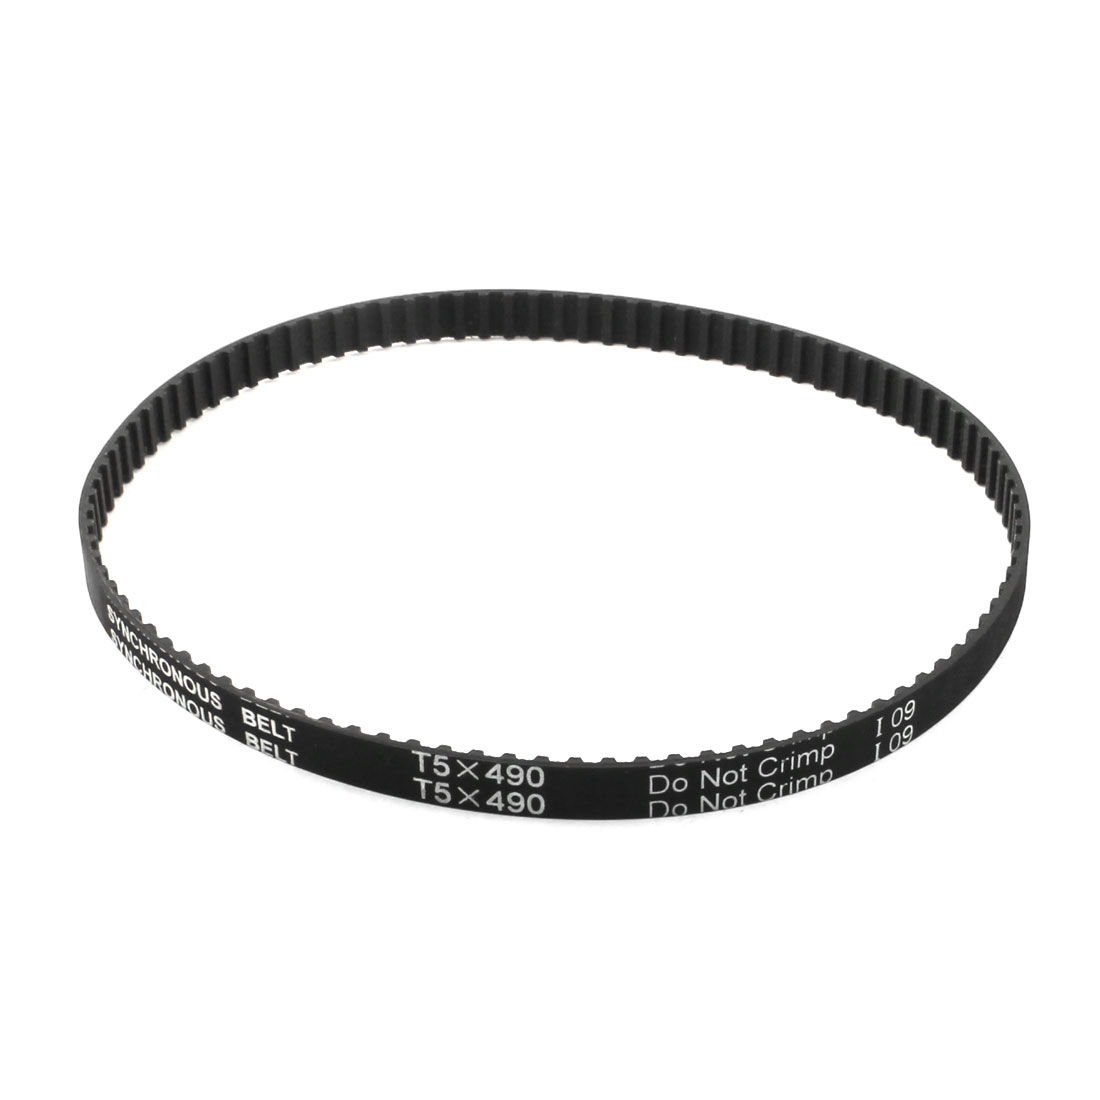 T5x490 98-Tooth 10mm Width Single Side Black Rubber Cogged Industrial CNC Machine Synchronous Timing Belt 490mm Girth